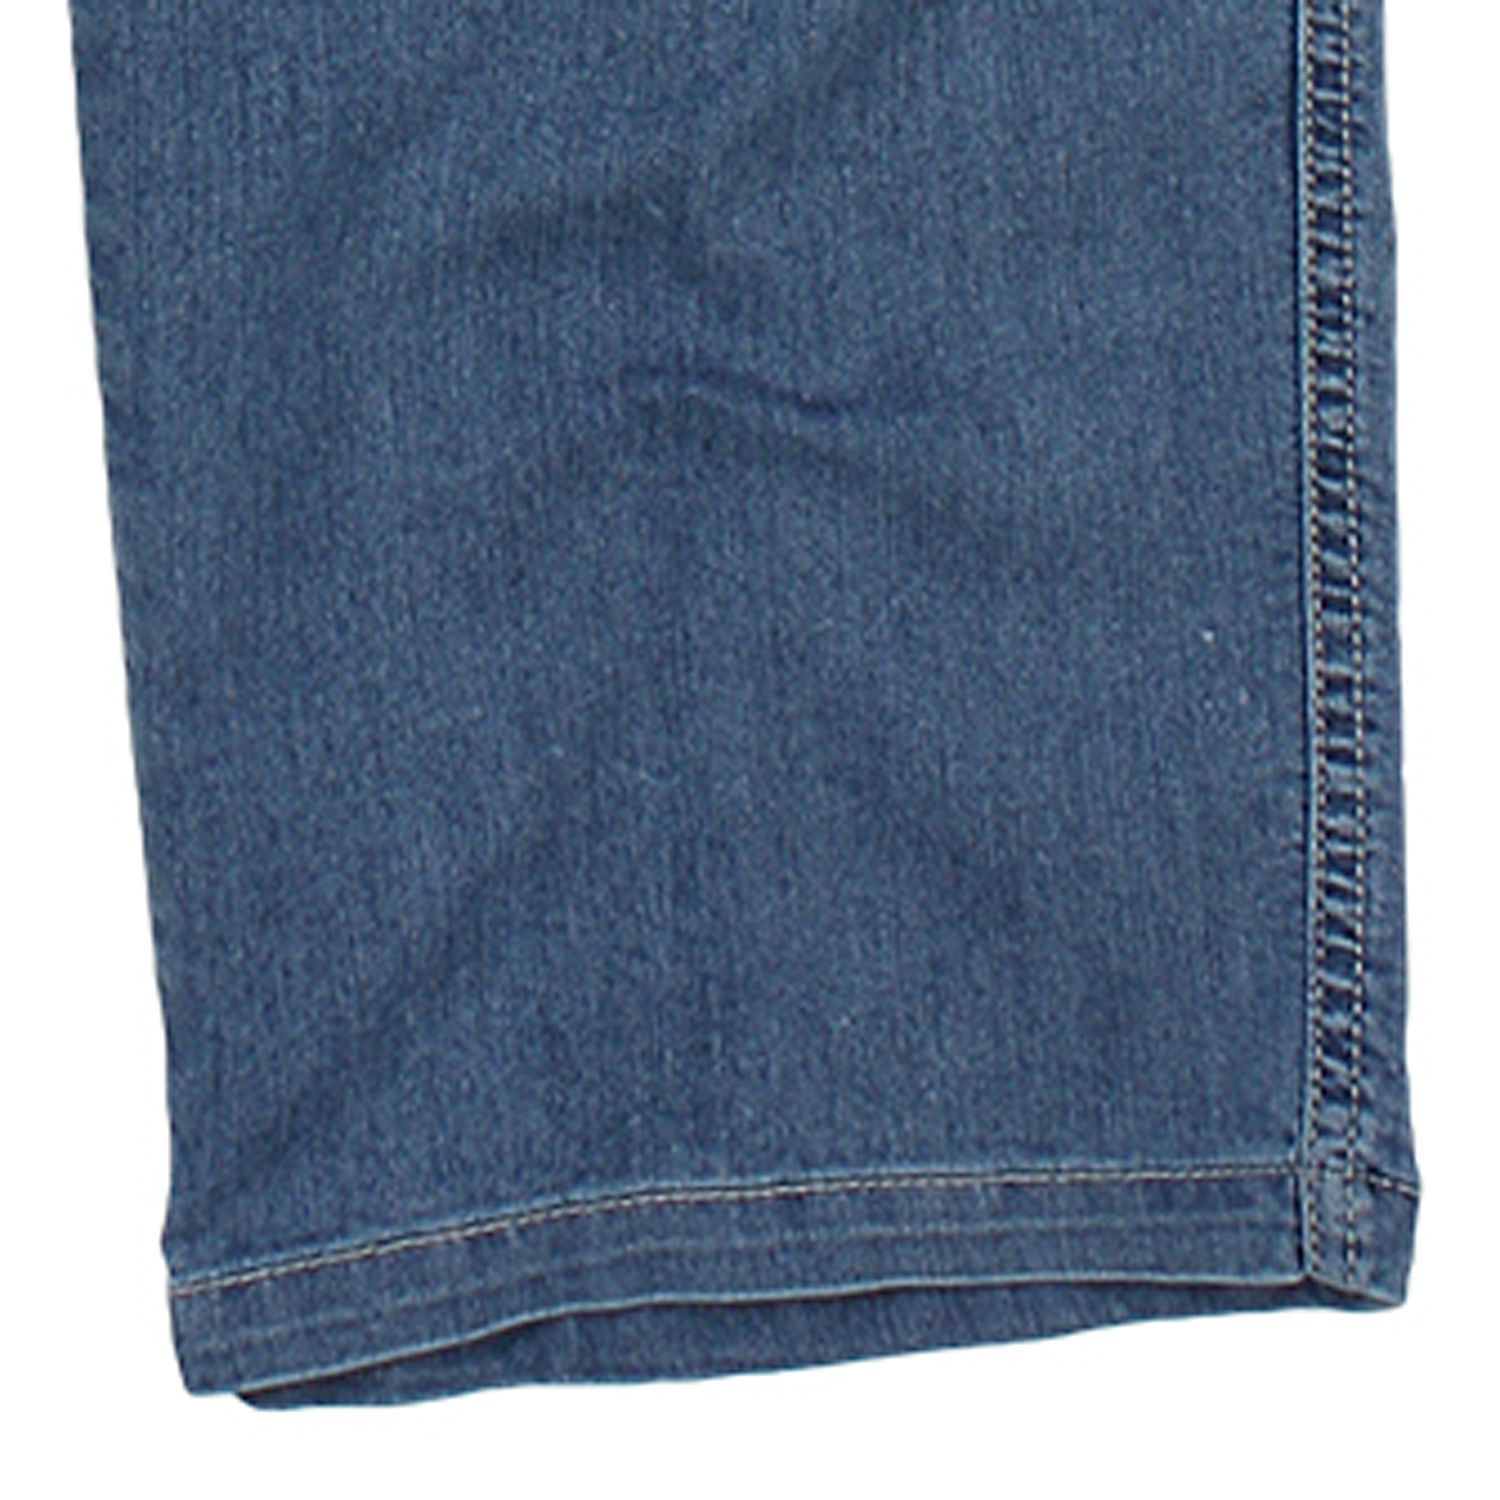 Detail Image to Light blue jogging jeans by Abraxas in oversizes until 12XL